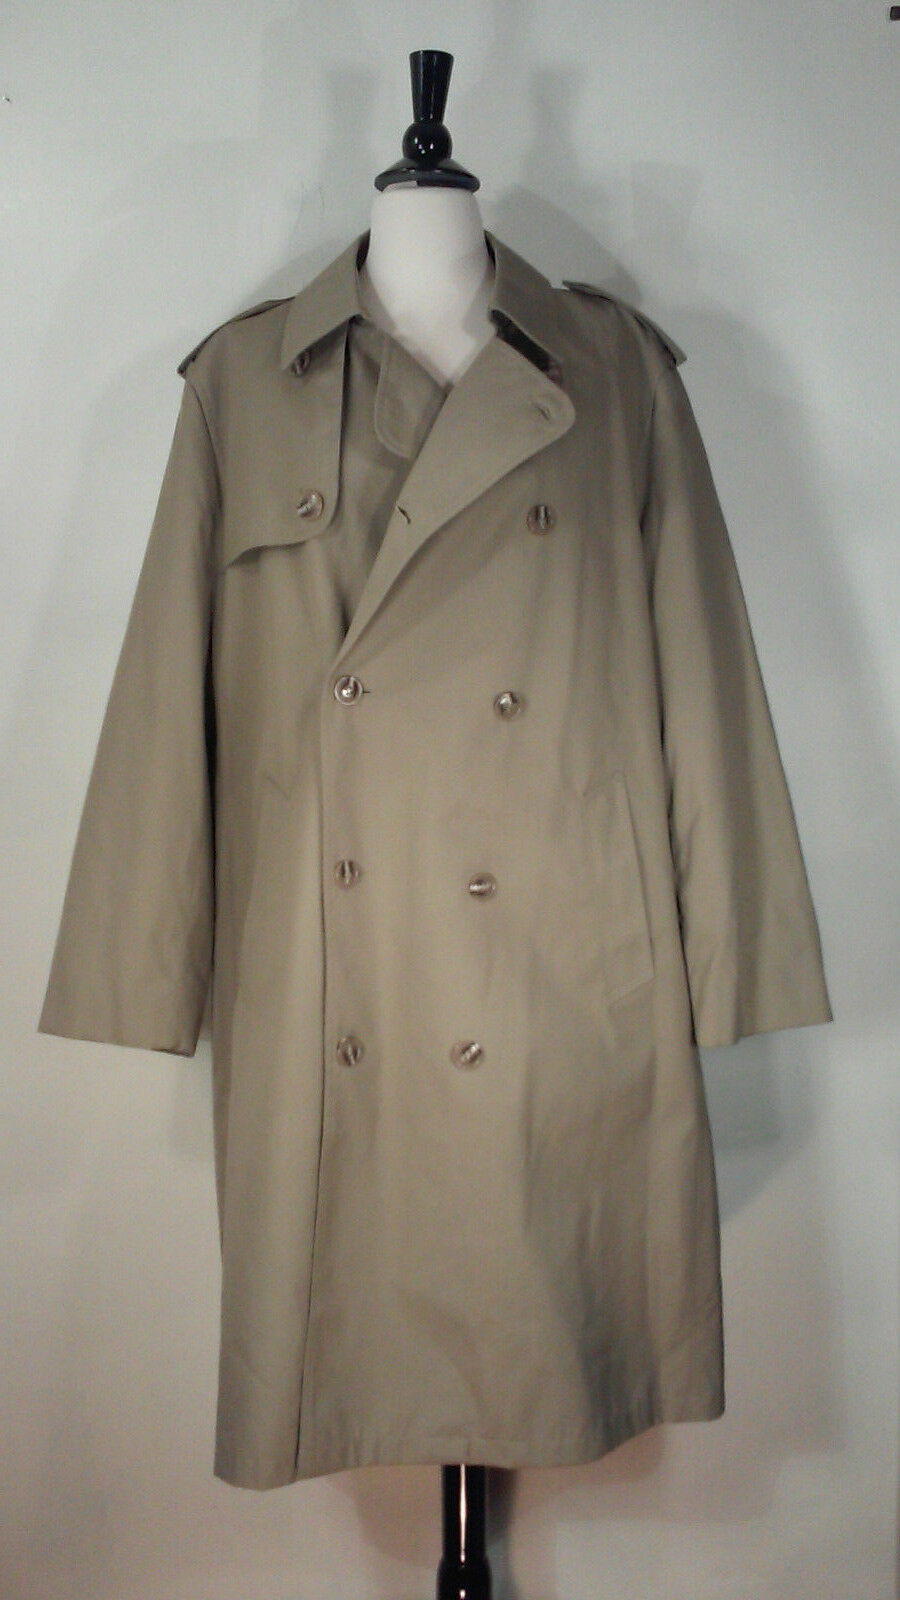 Misty Harbor Trench Coat Double Breasted Tan Zip Lining Belt Men's Size 42R